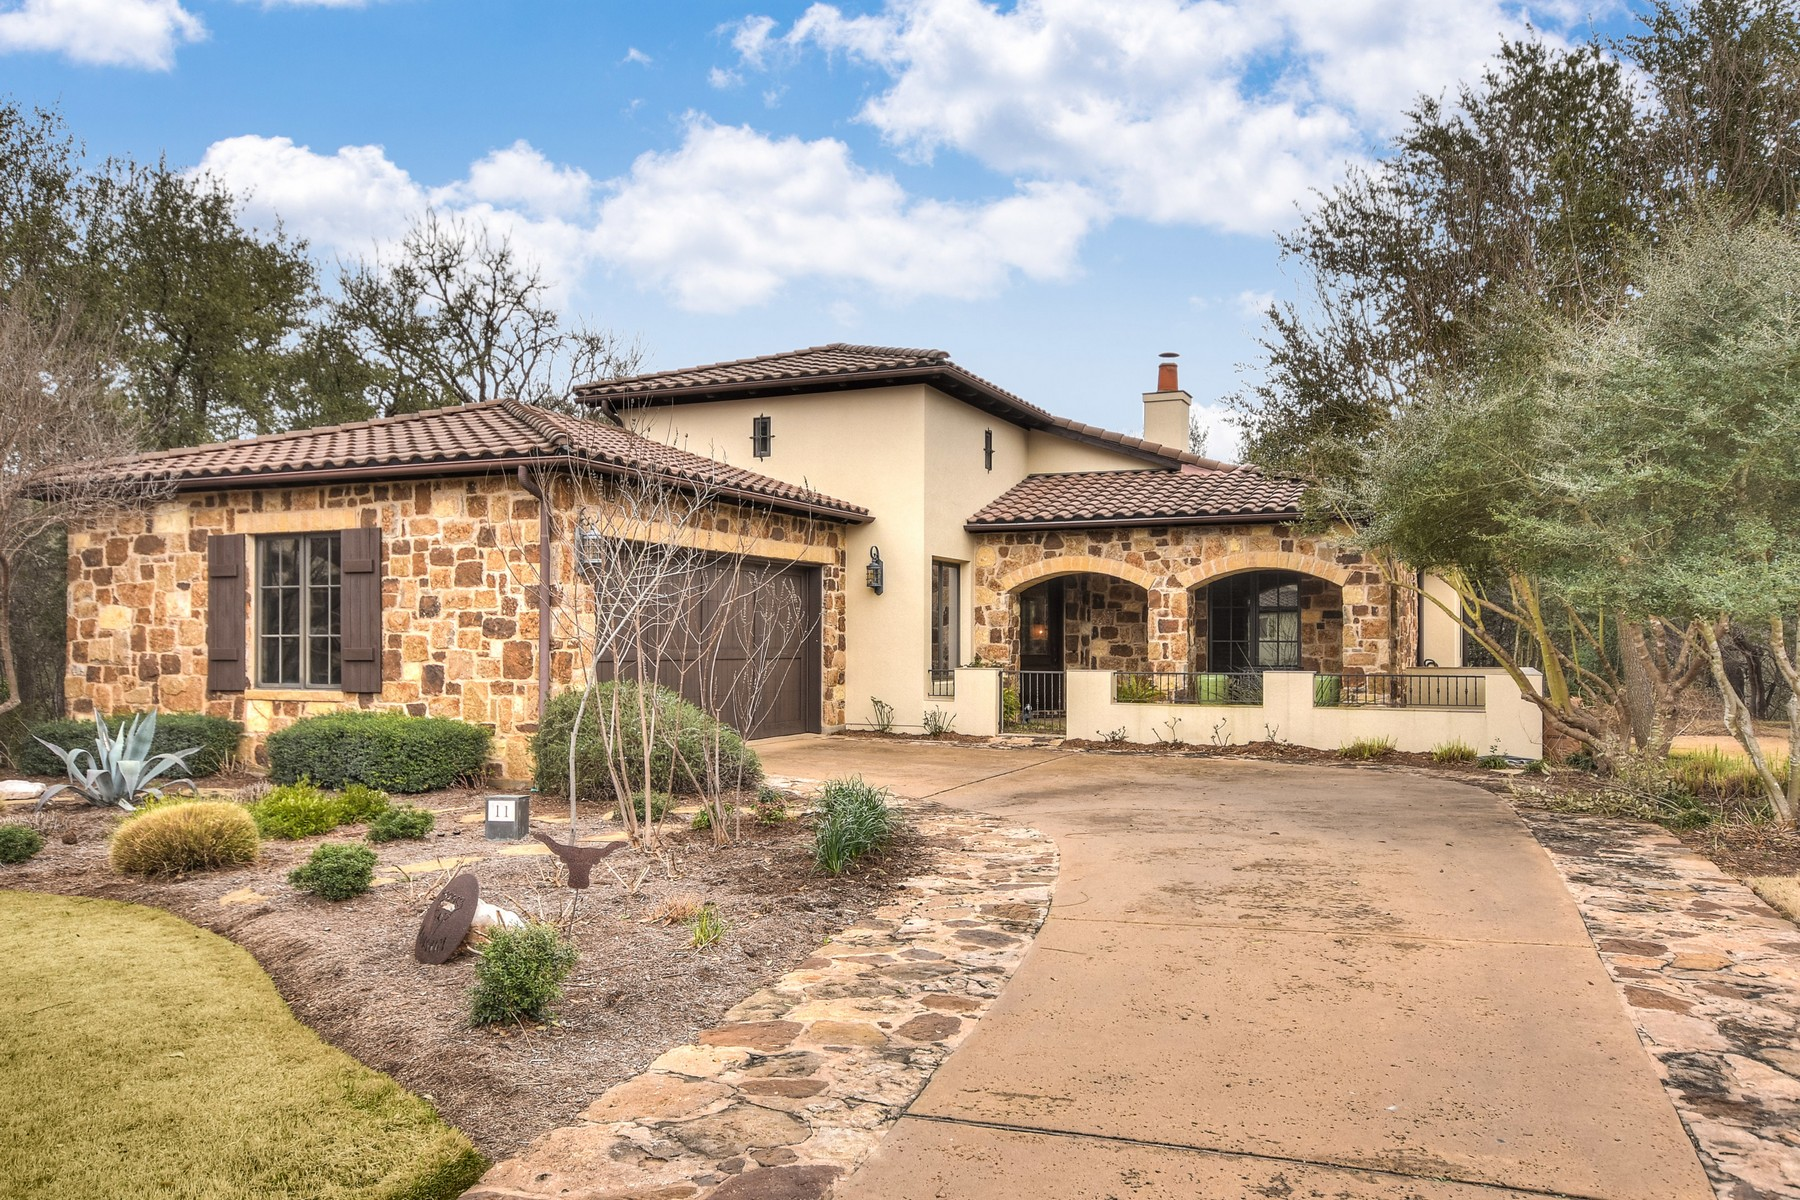 Single Family Home for Sale at Lock it. Leave it. Love it. 4501 Spanish Oaks Club Blvd 11 Austin, Texas, 78738 United States